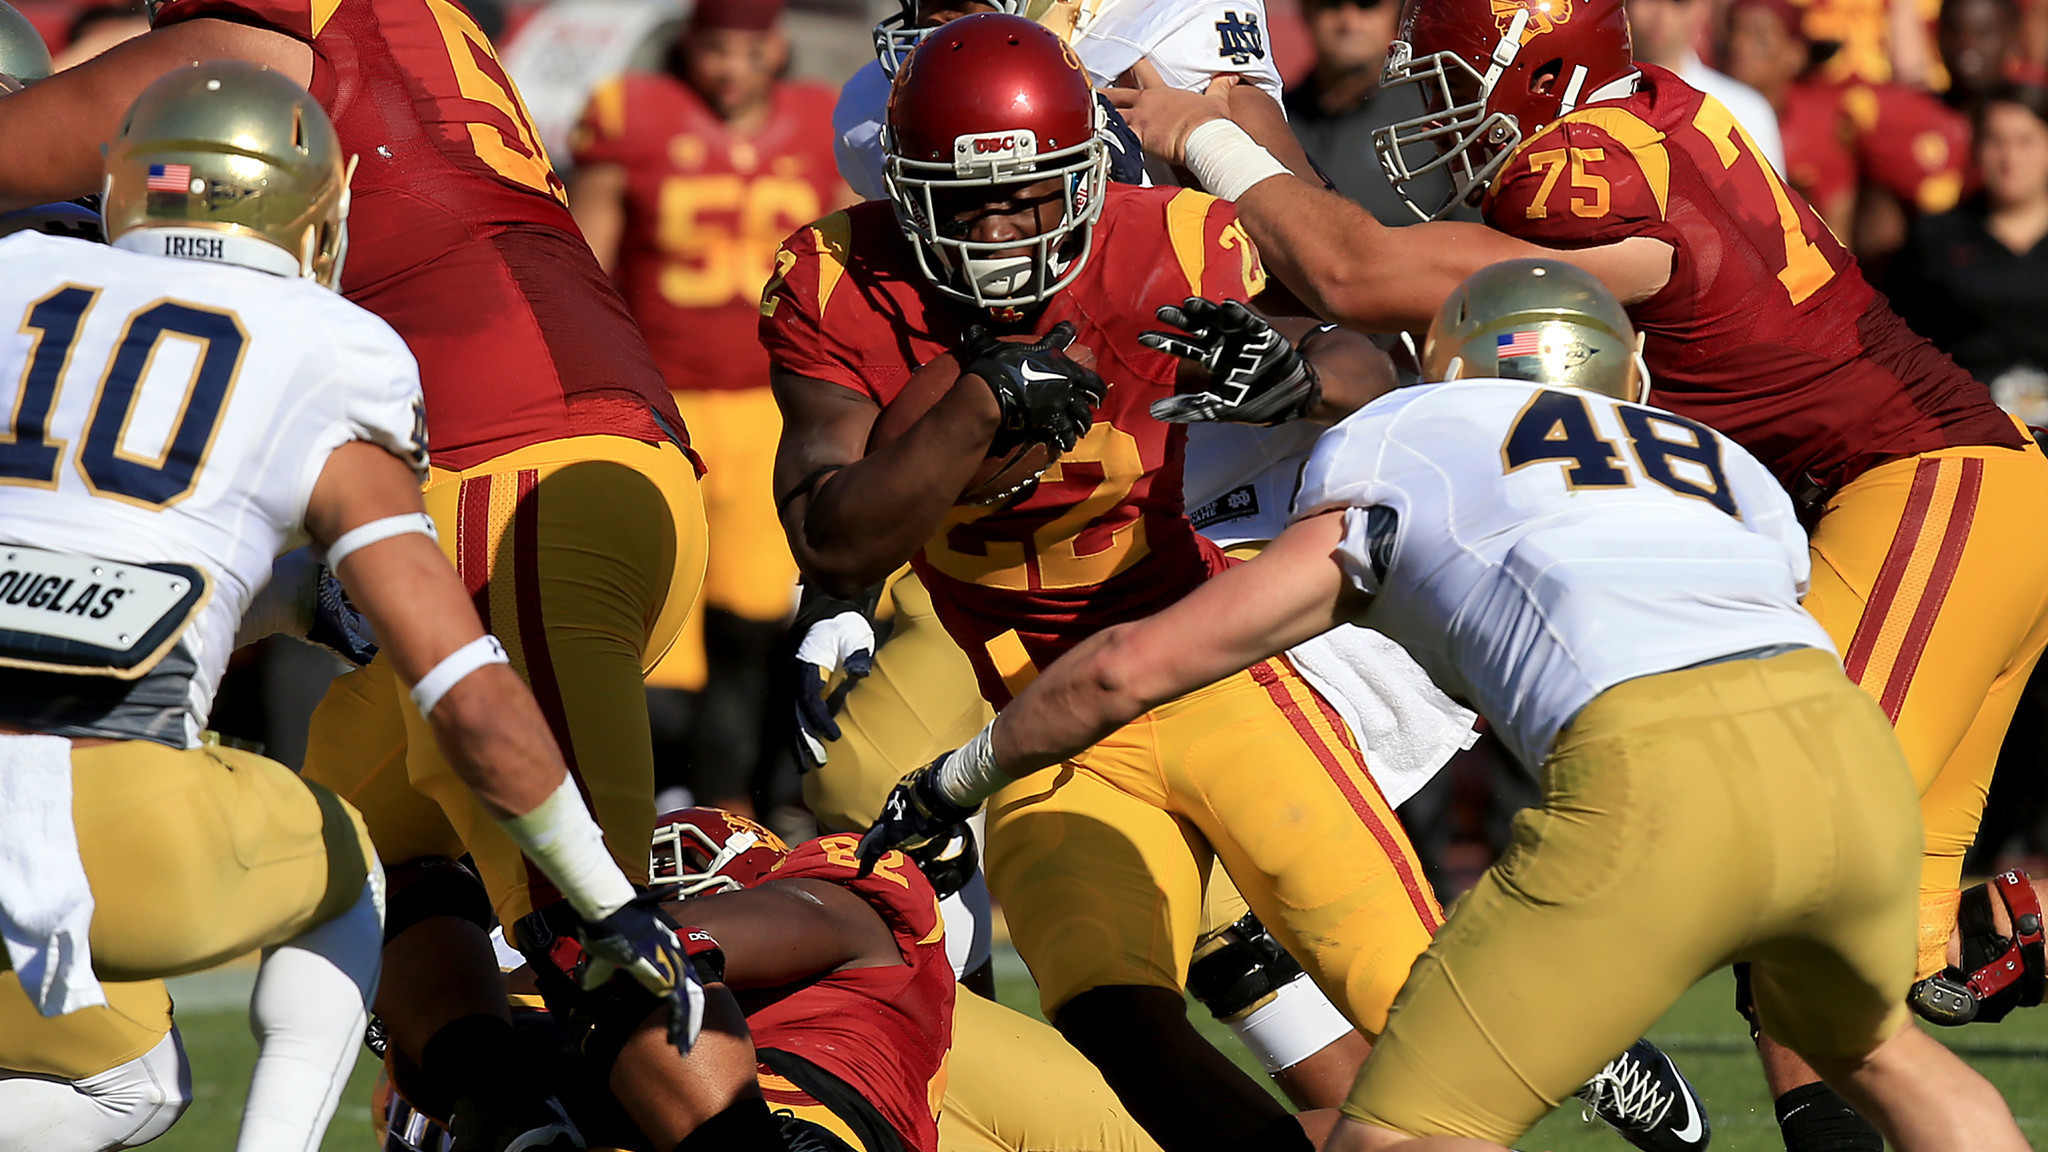 USC could be running low on running backs next season